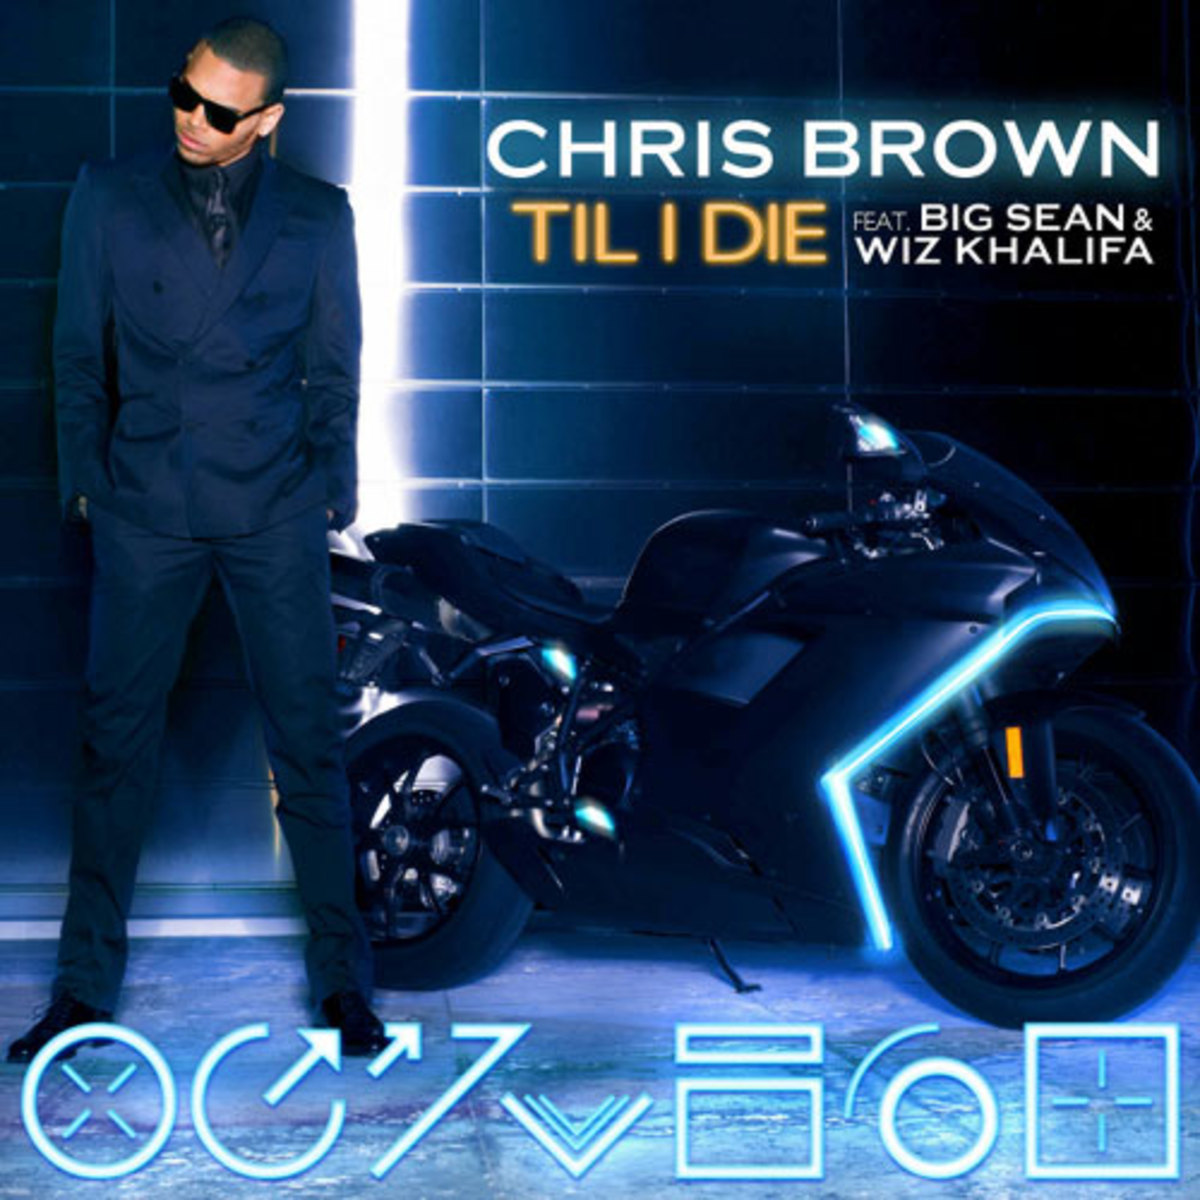 chrisbrown-tilidie2.jpg